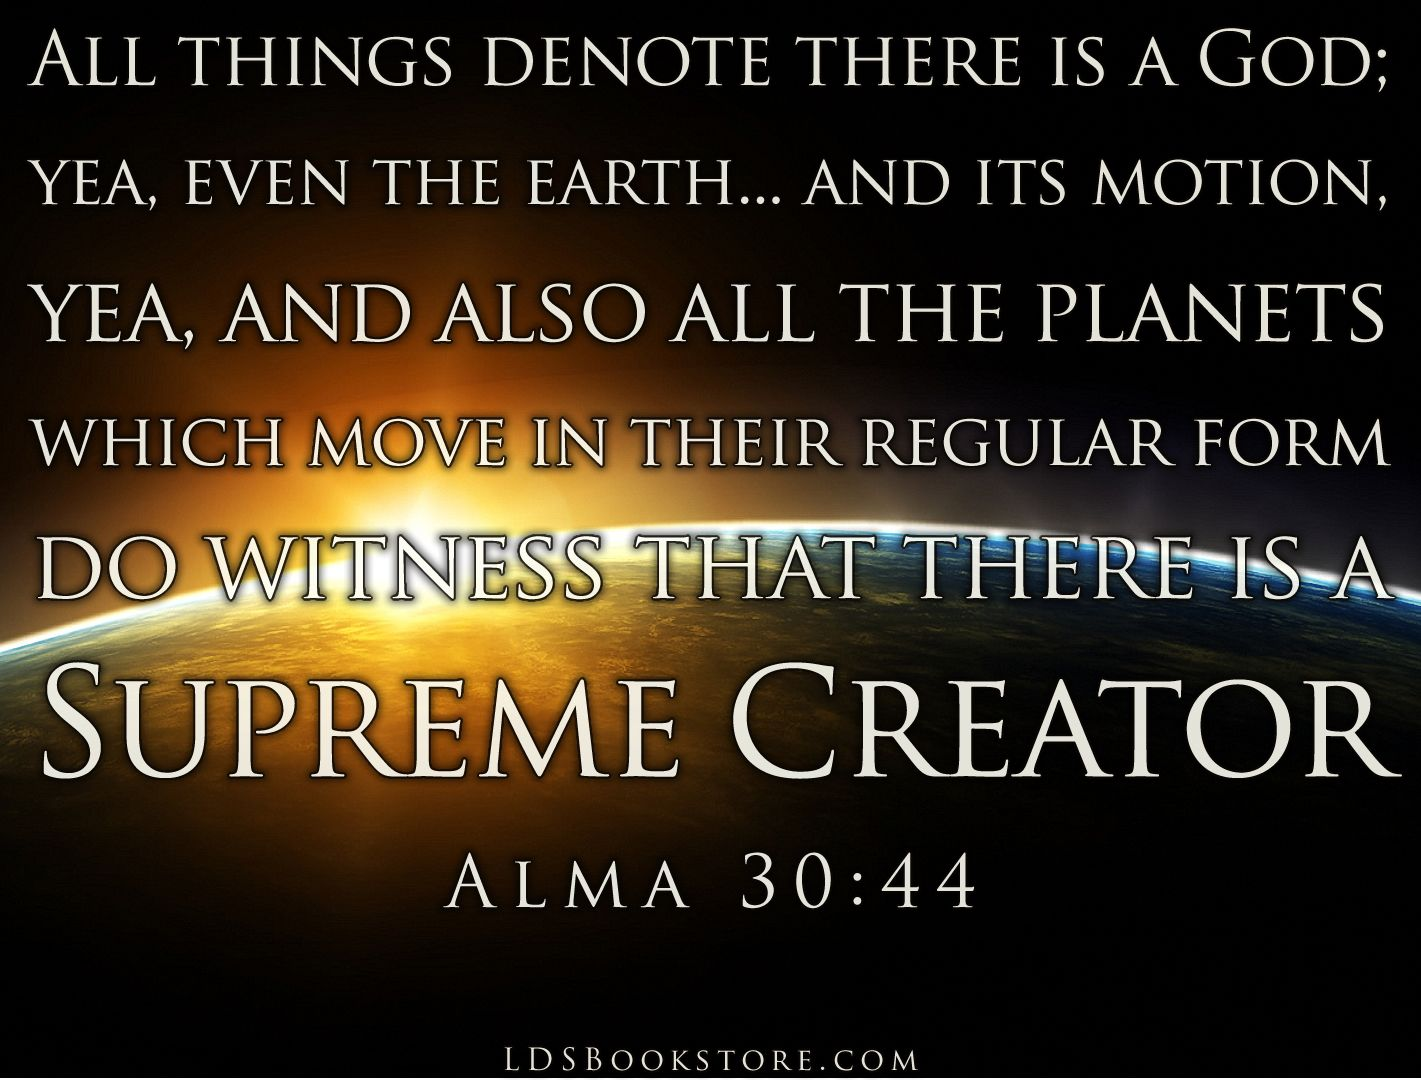 All Things Denote There is a God